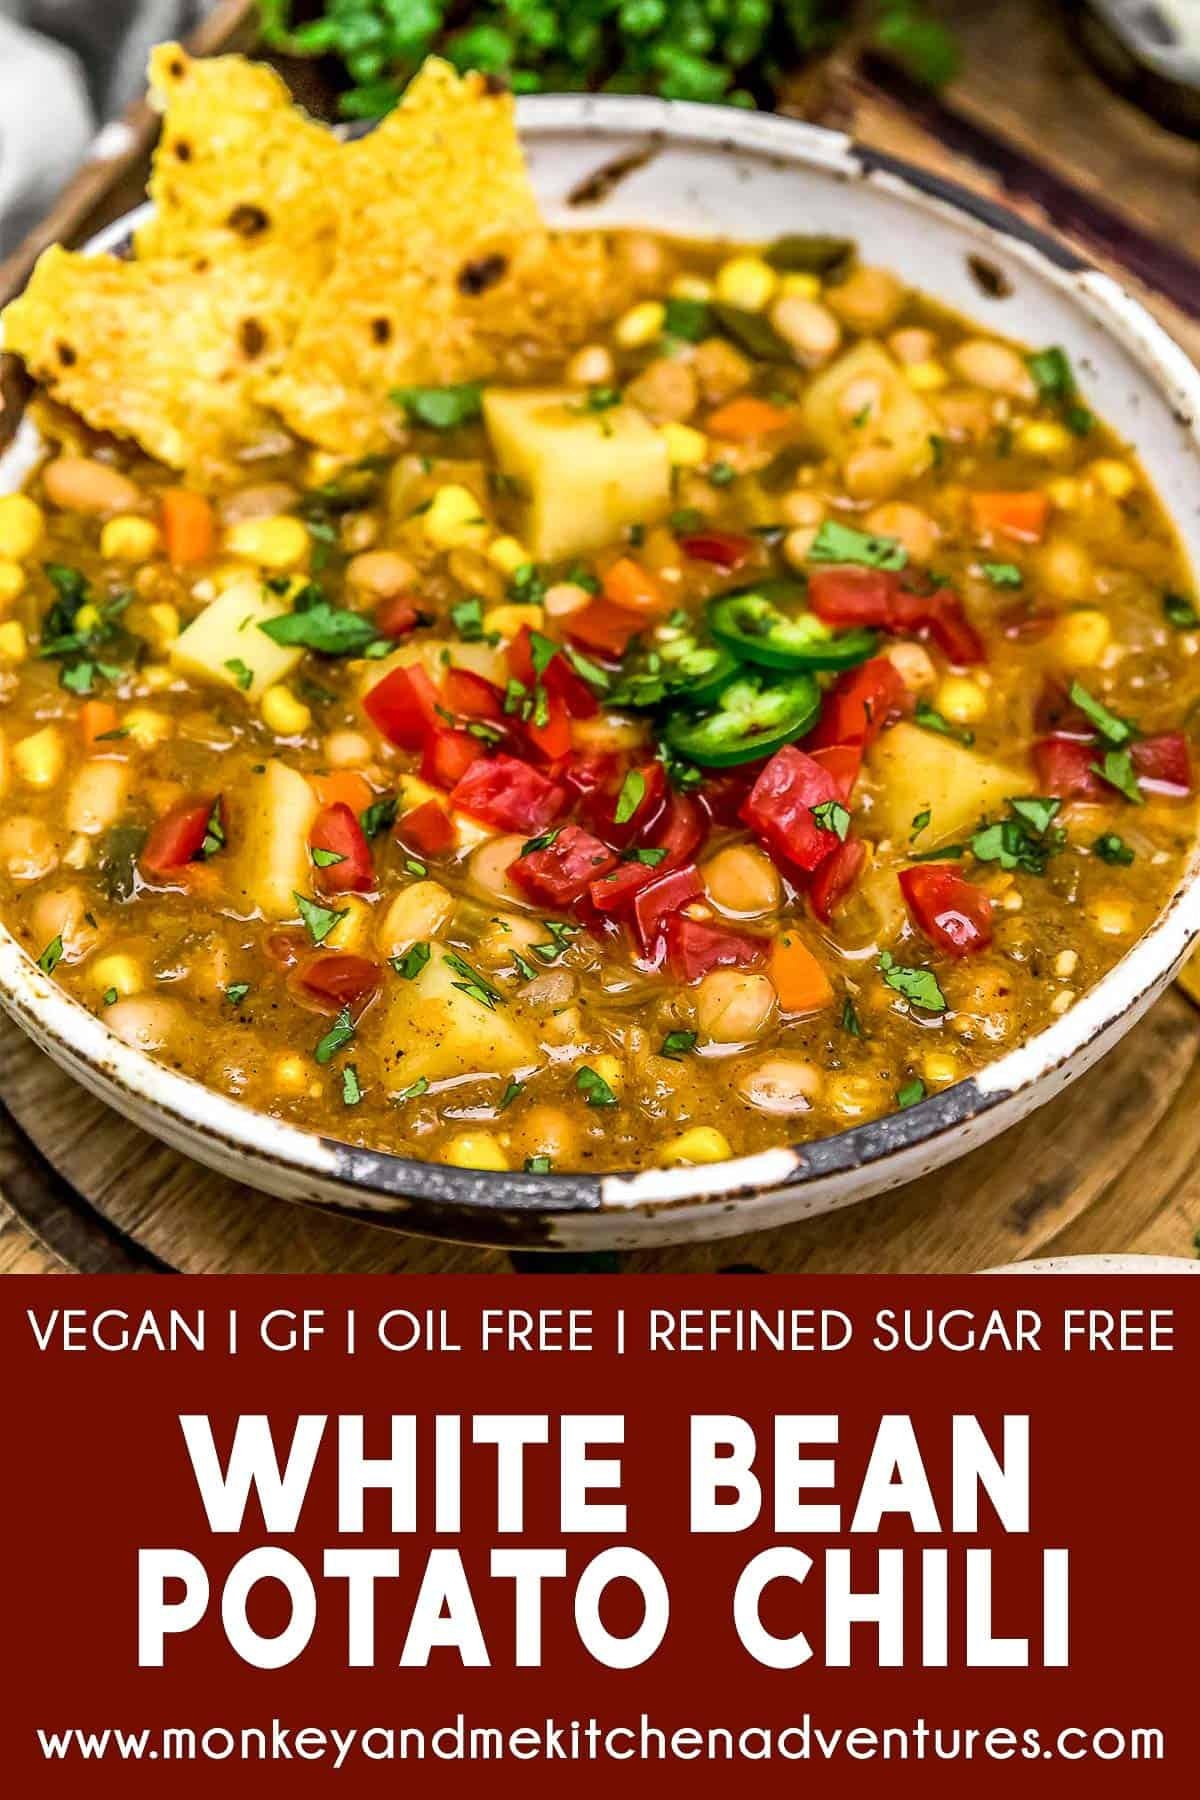 White Bean Potato Chili with text description